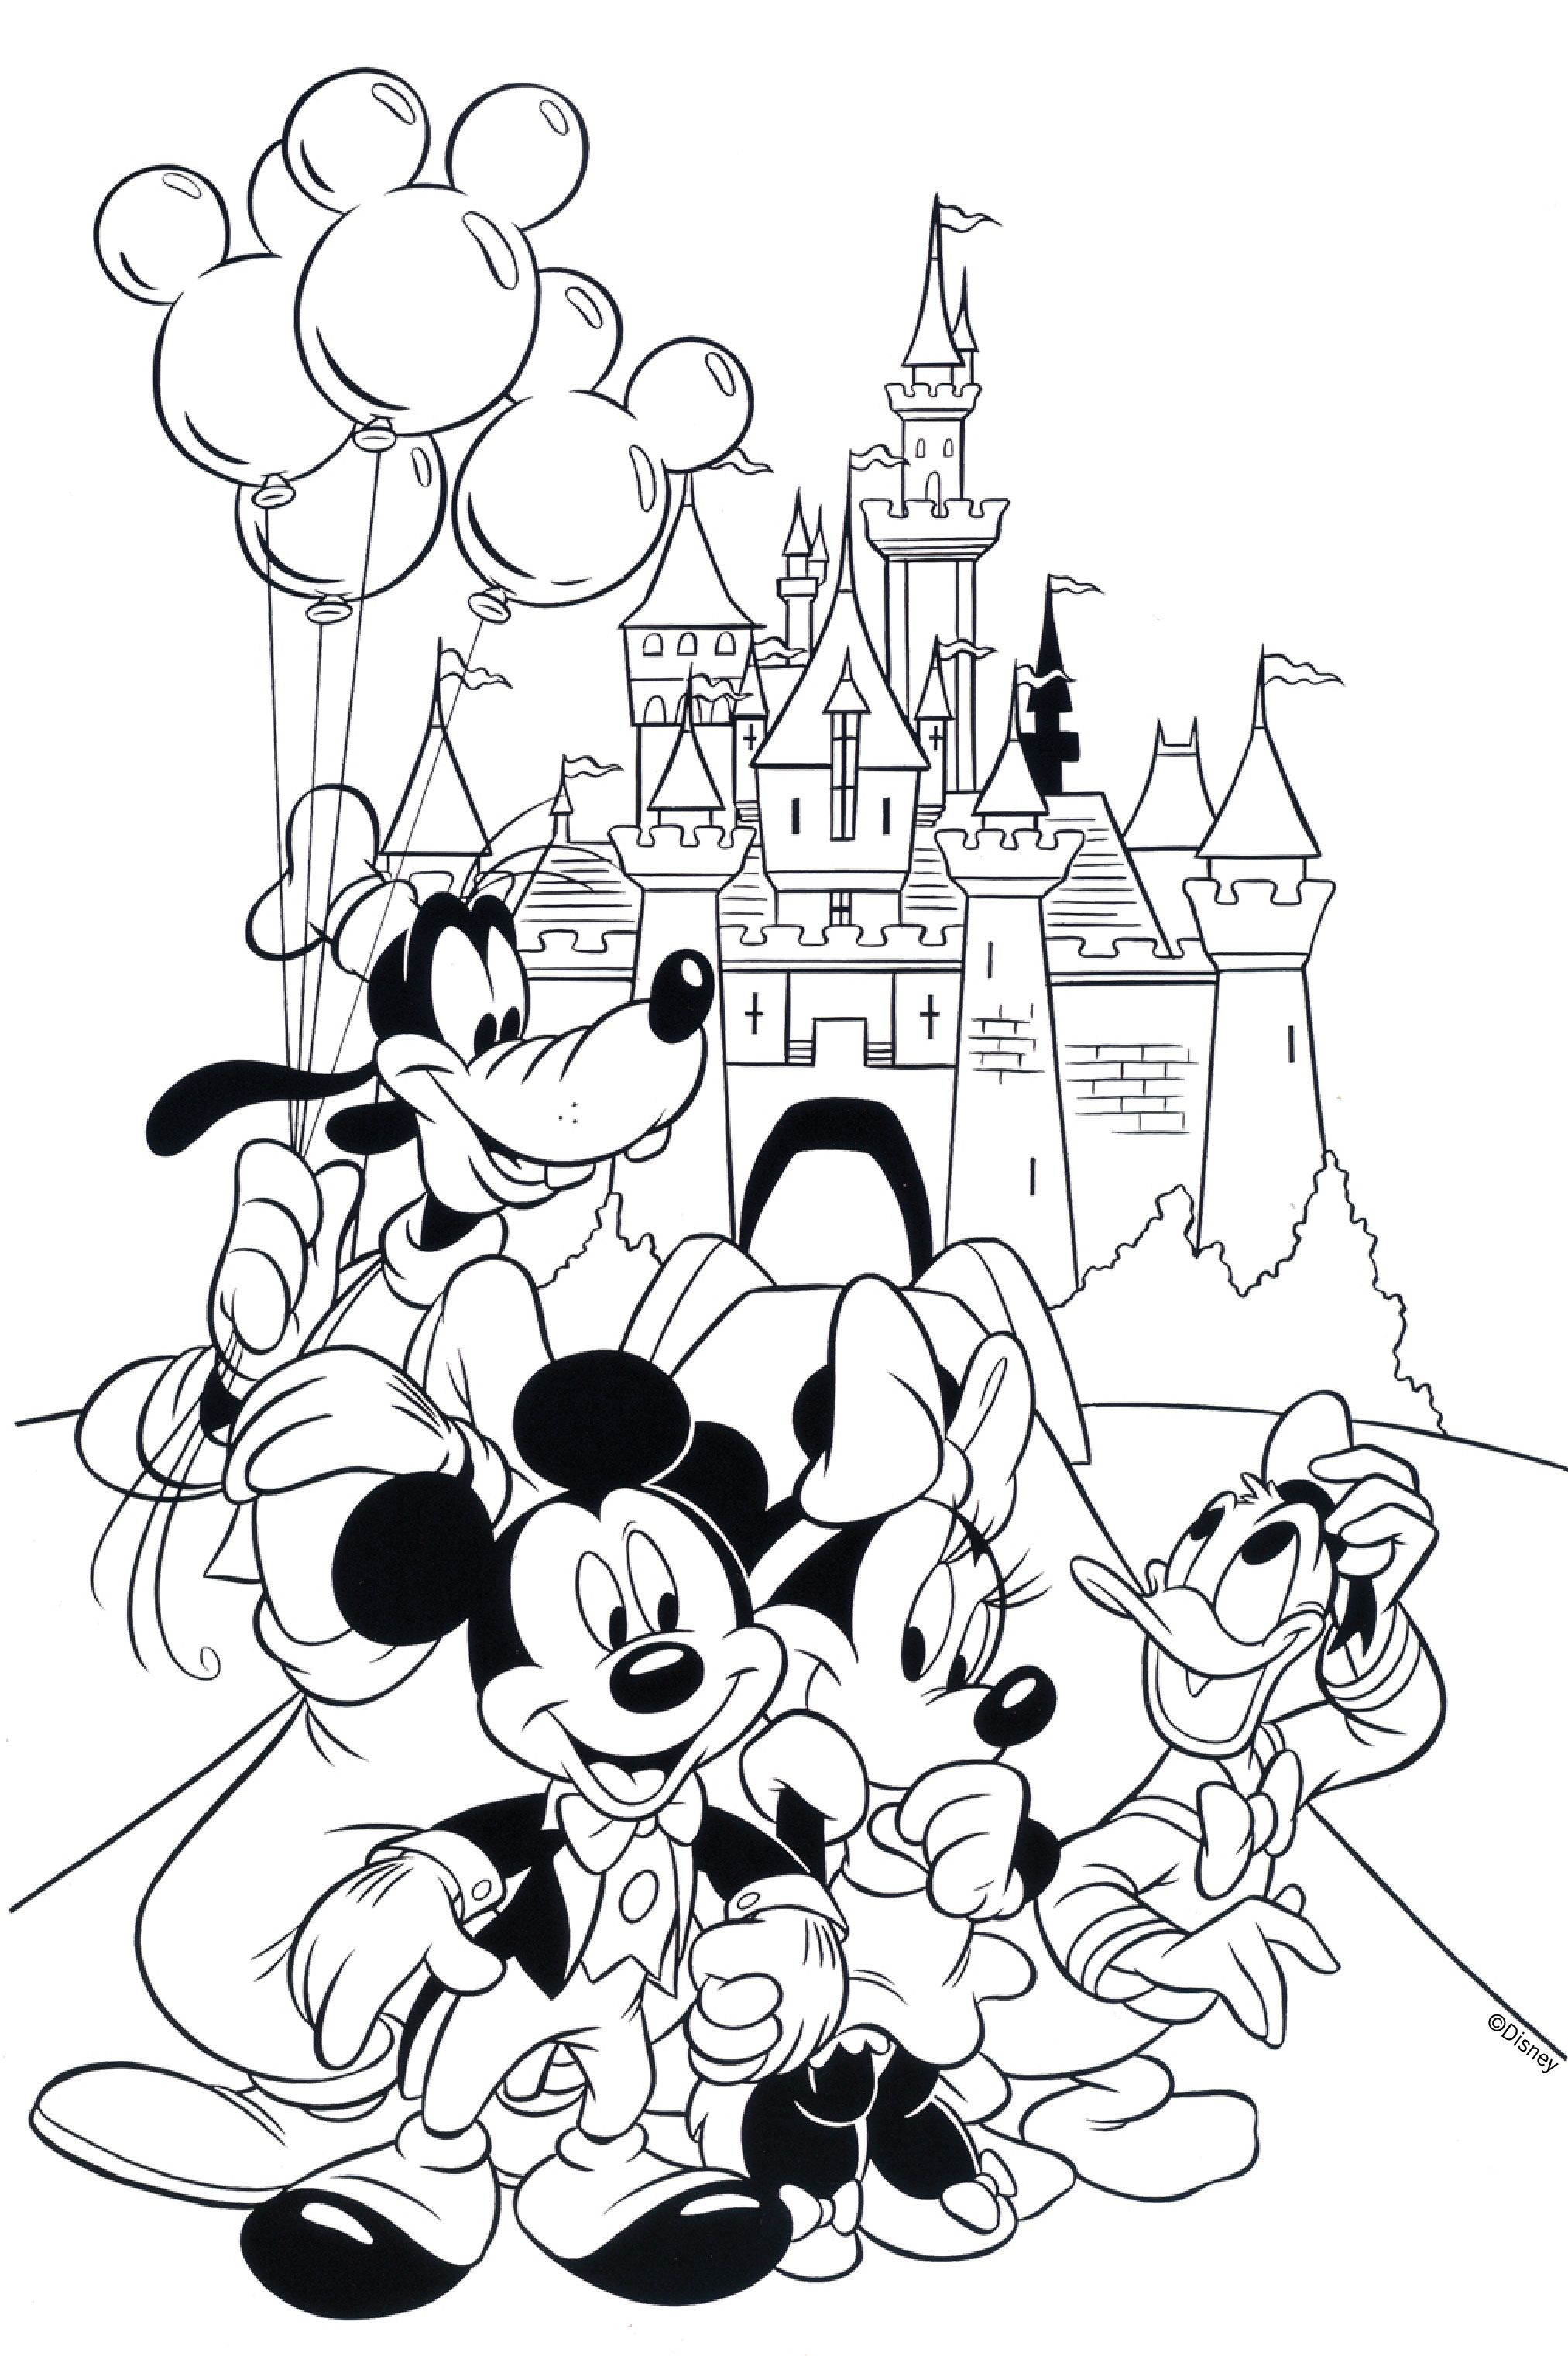 Free Disney Coloring Page Printable Disney Coloring Pages Mickey Coloring Pages Free Disney Coloring Pages